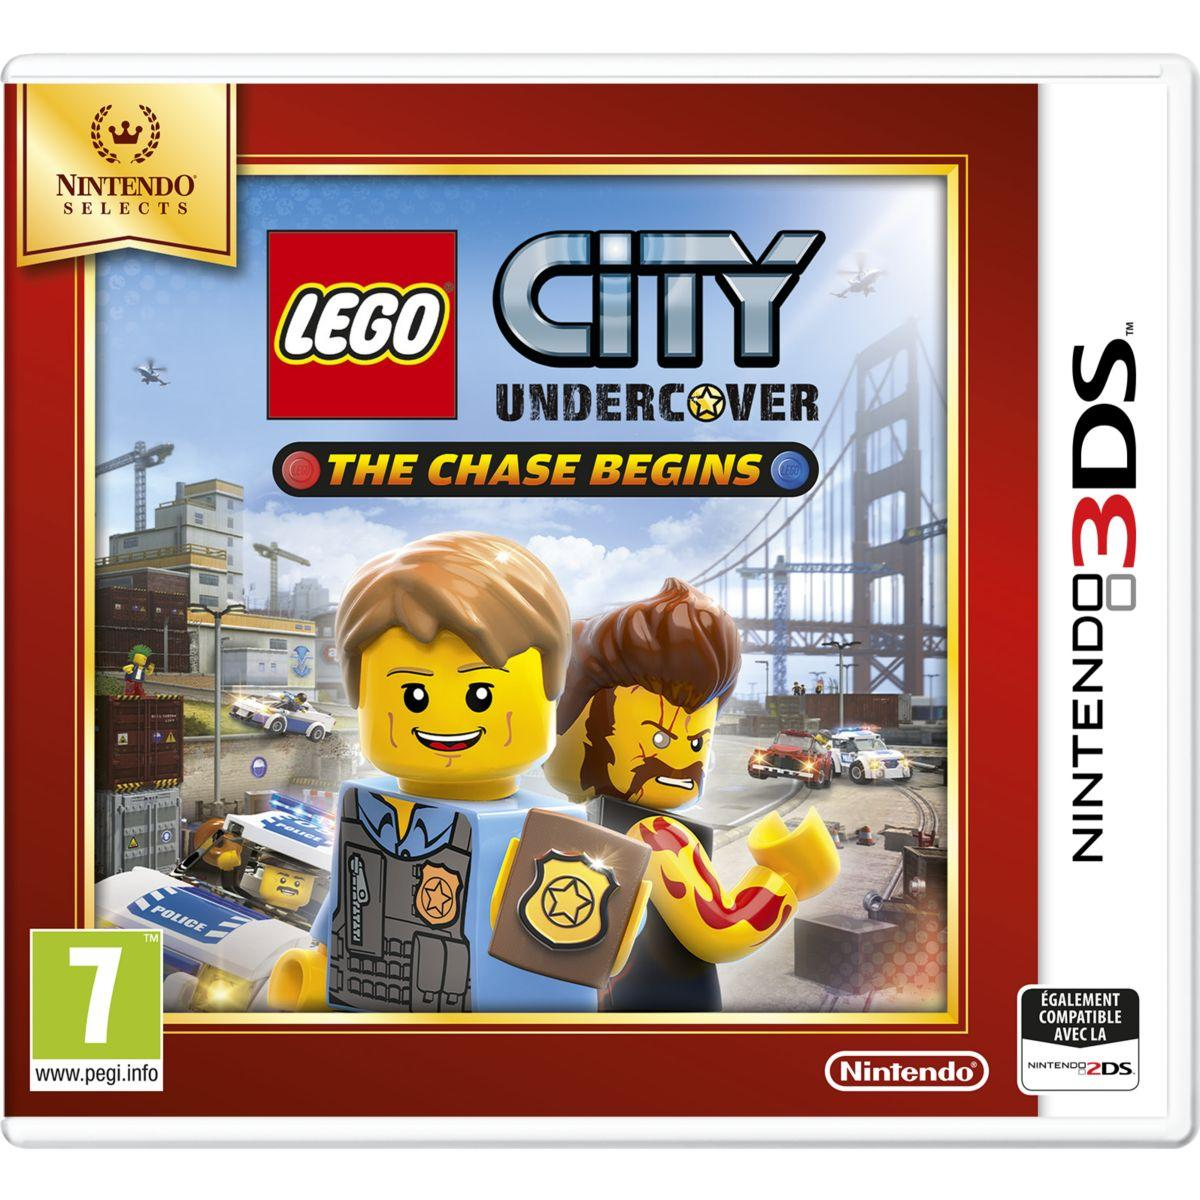 Jeu 3ds nintendo lego city undercover the chase begins selects - 2% de remise immédiate avec le code : cool2 (photo)